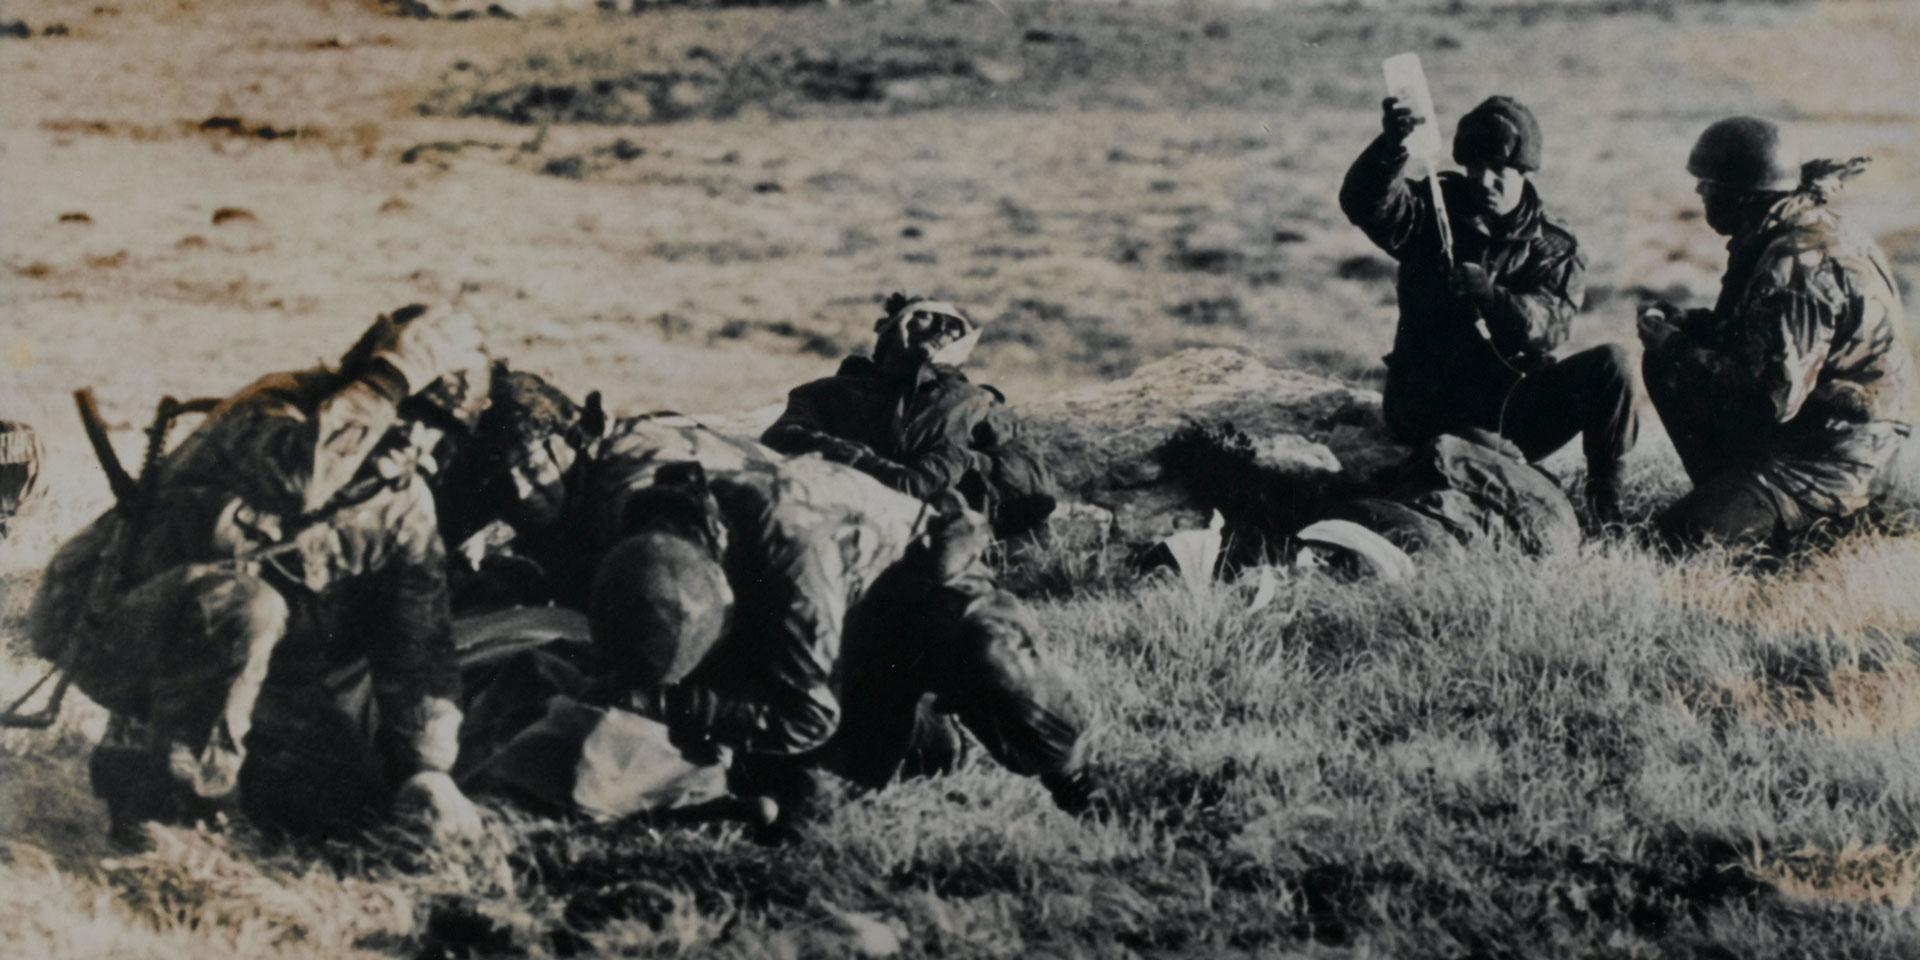 Paramedics attending a wounded Argentine soldier under fire, Mount Longdon, Falkland Islands, 1982